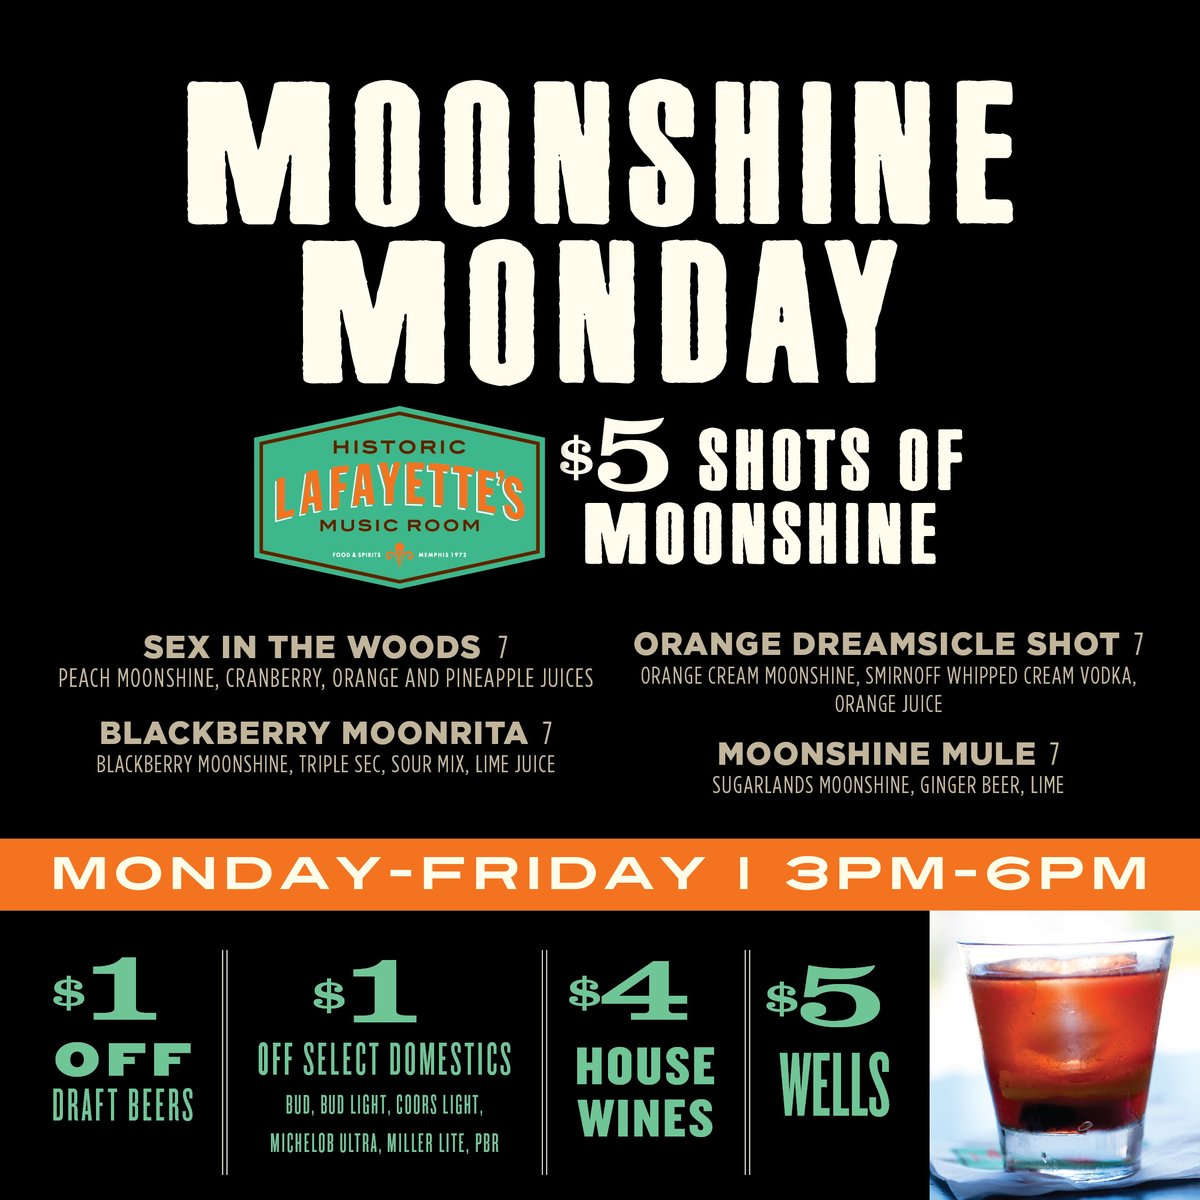 Were rolling out our new #happyhour menu this week! Stay tuned for our drink specials! Today is Moonshine Monday!